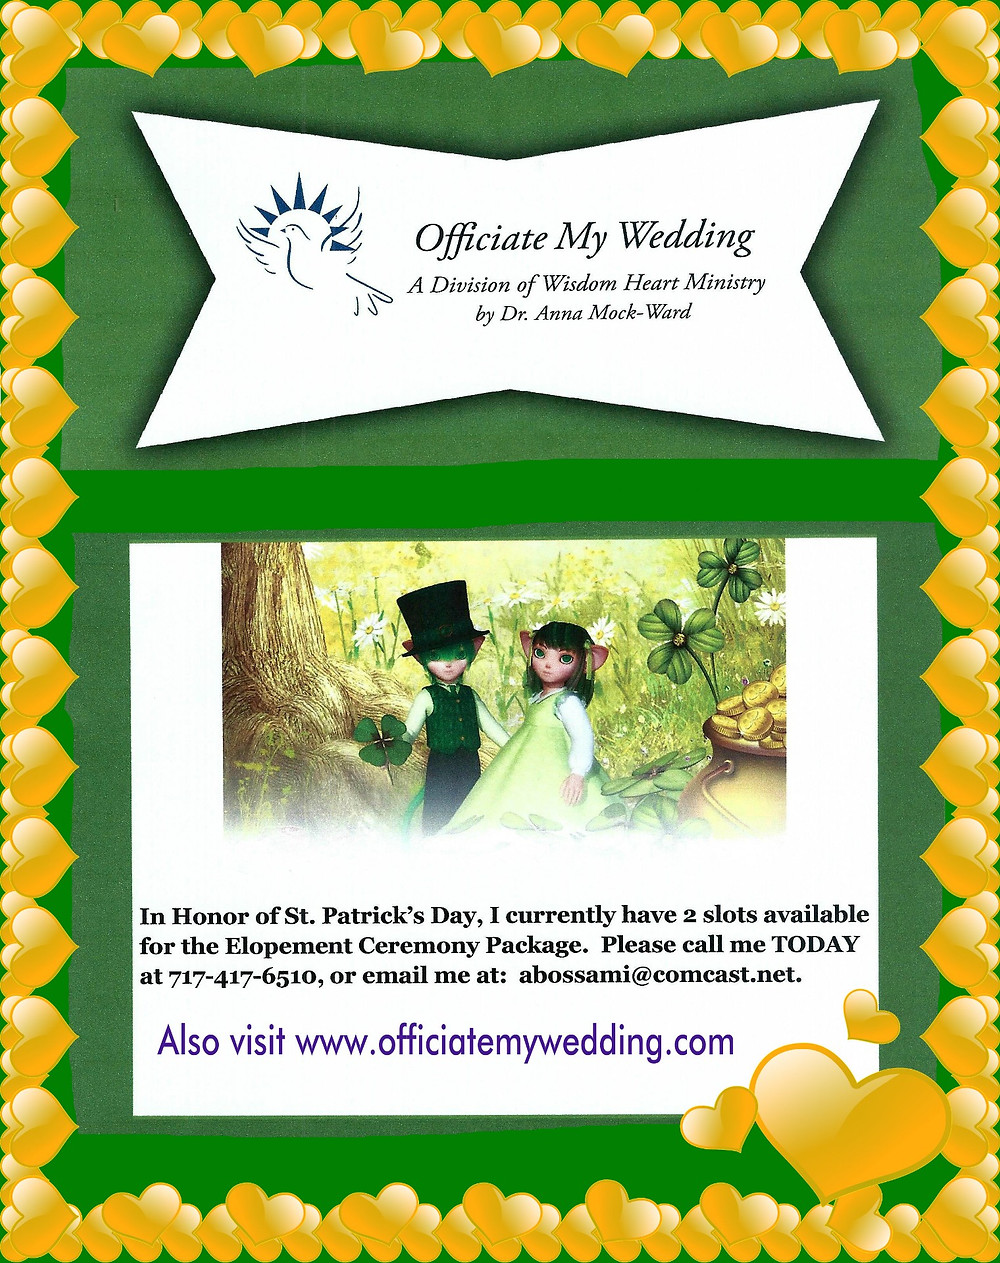 www.kizoa.com_st patrick day flyer special march year 2015.jpg